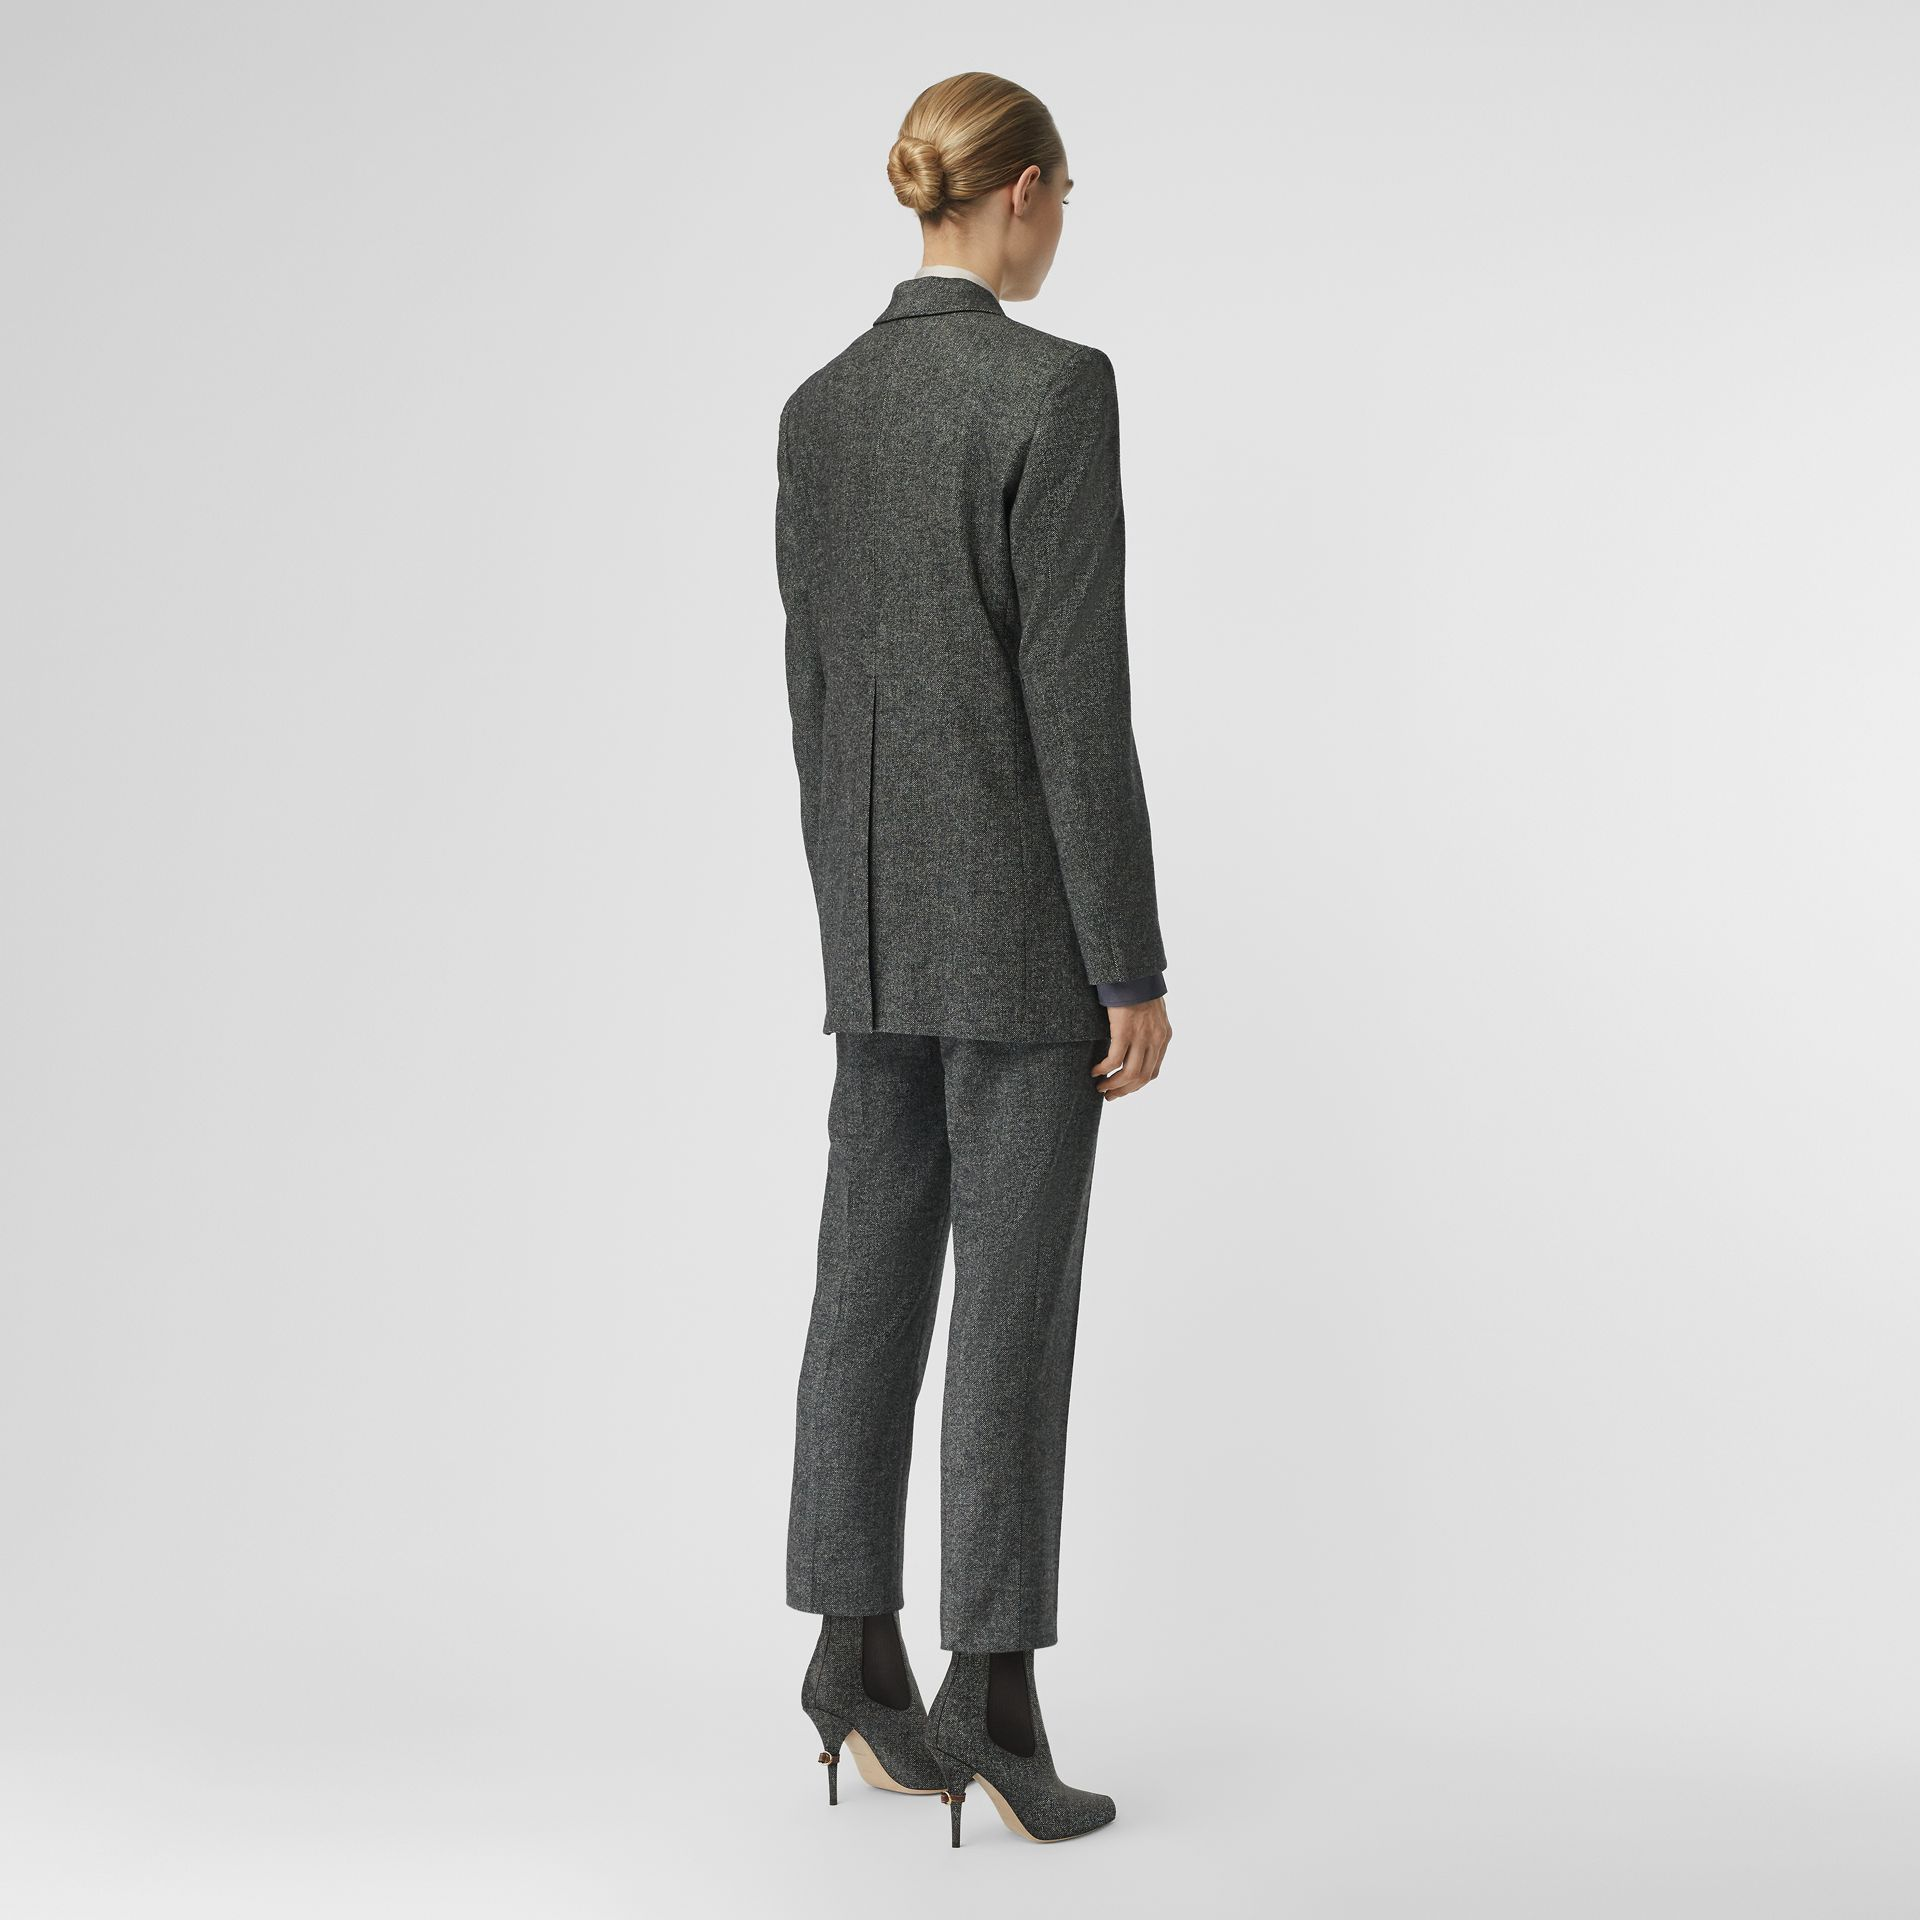 Wool Cashmere Tweed Tailored Jacket in Black Melange - Women | Burberry - gallery image 2